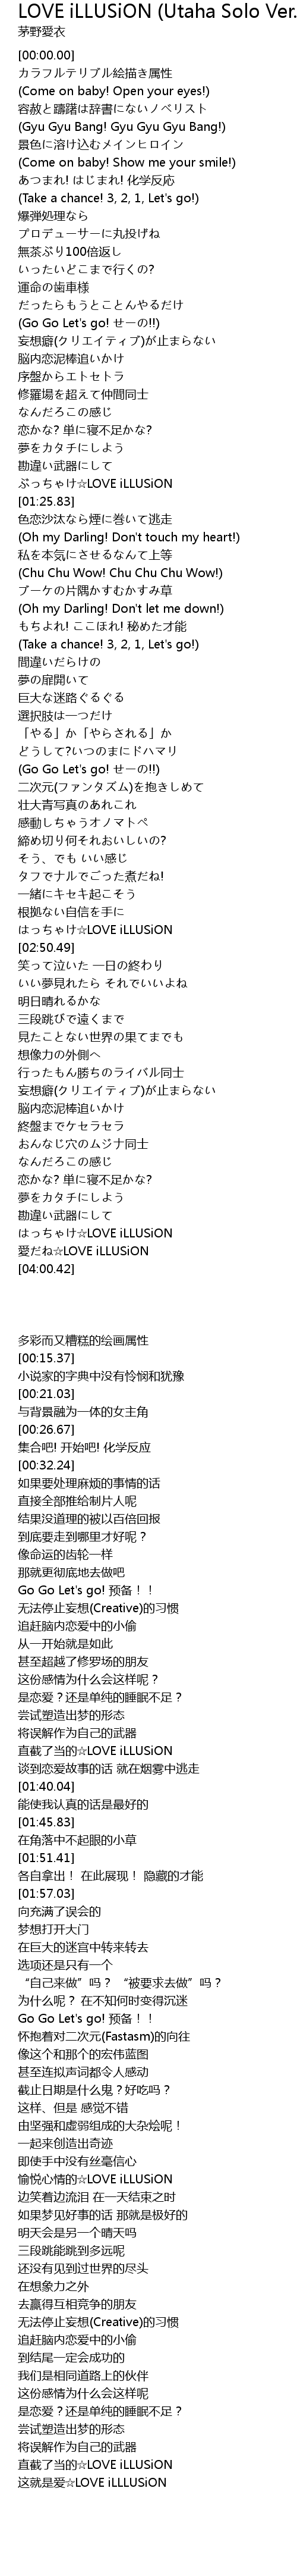 LOVE iLLUSiON (Utaha Solo Ver.) Lyrics